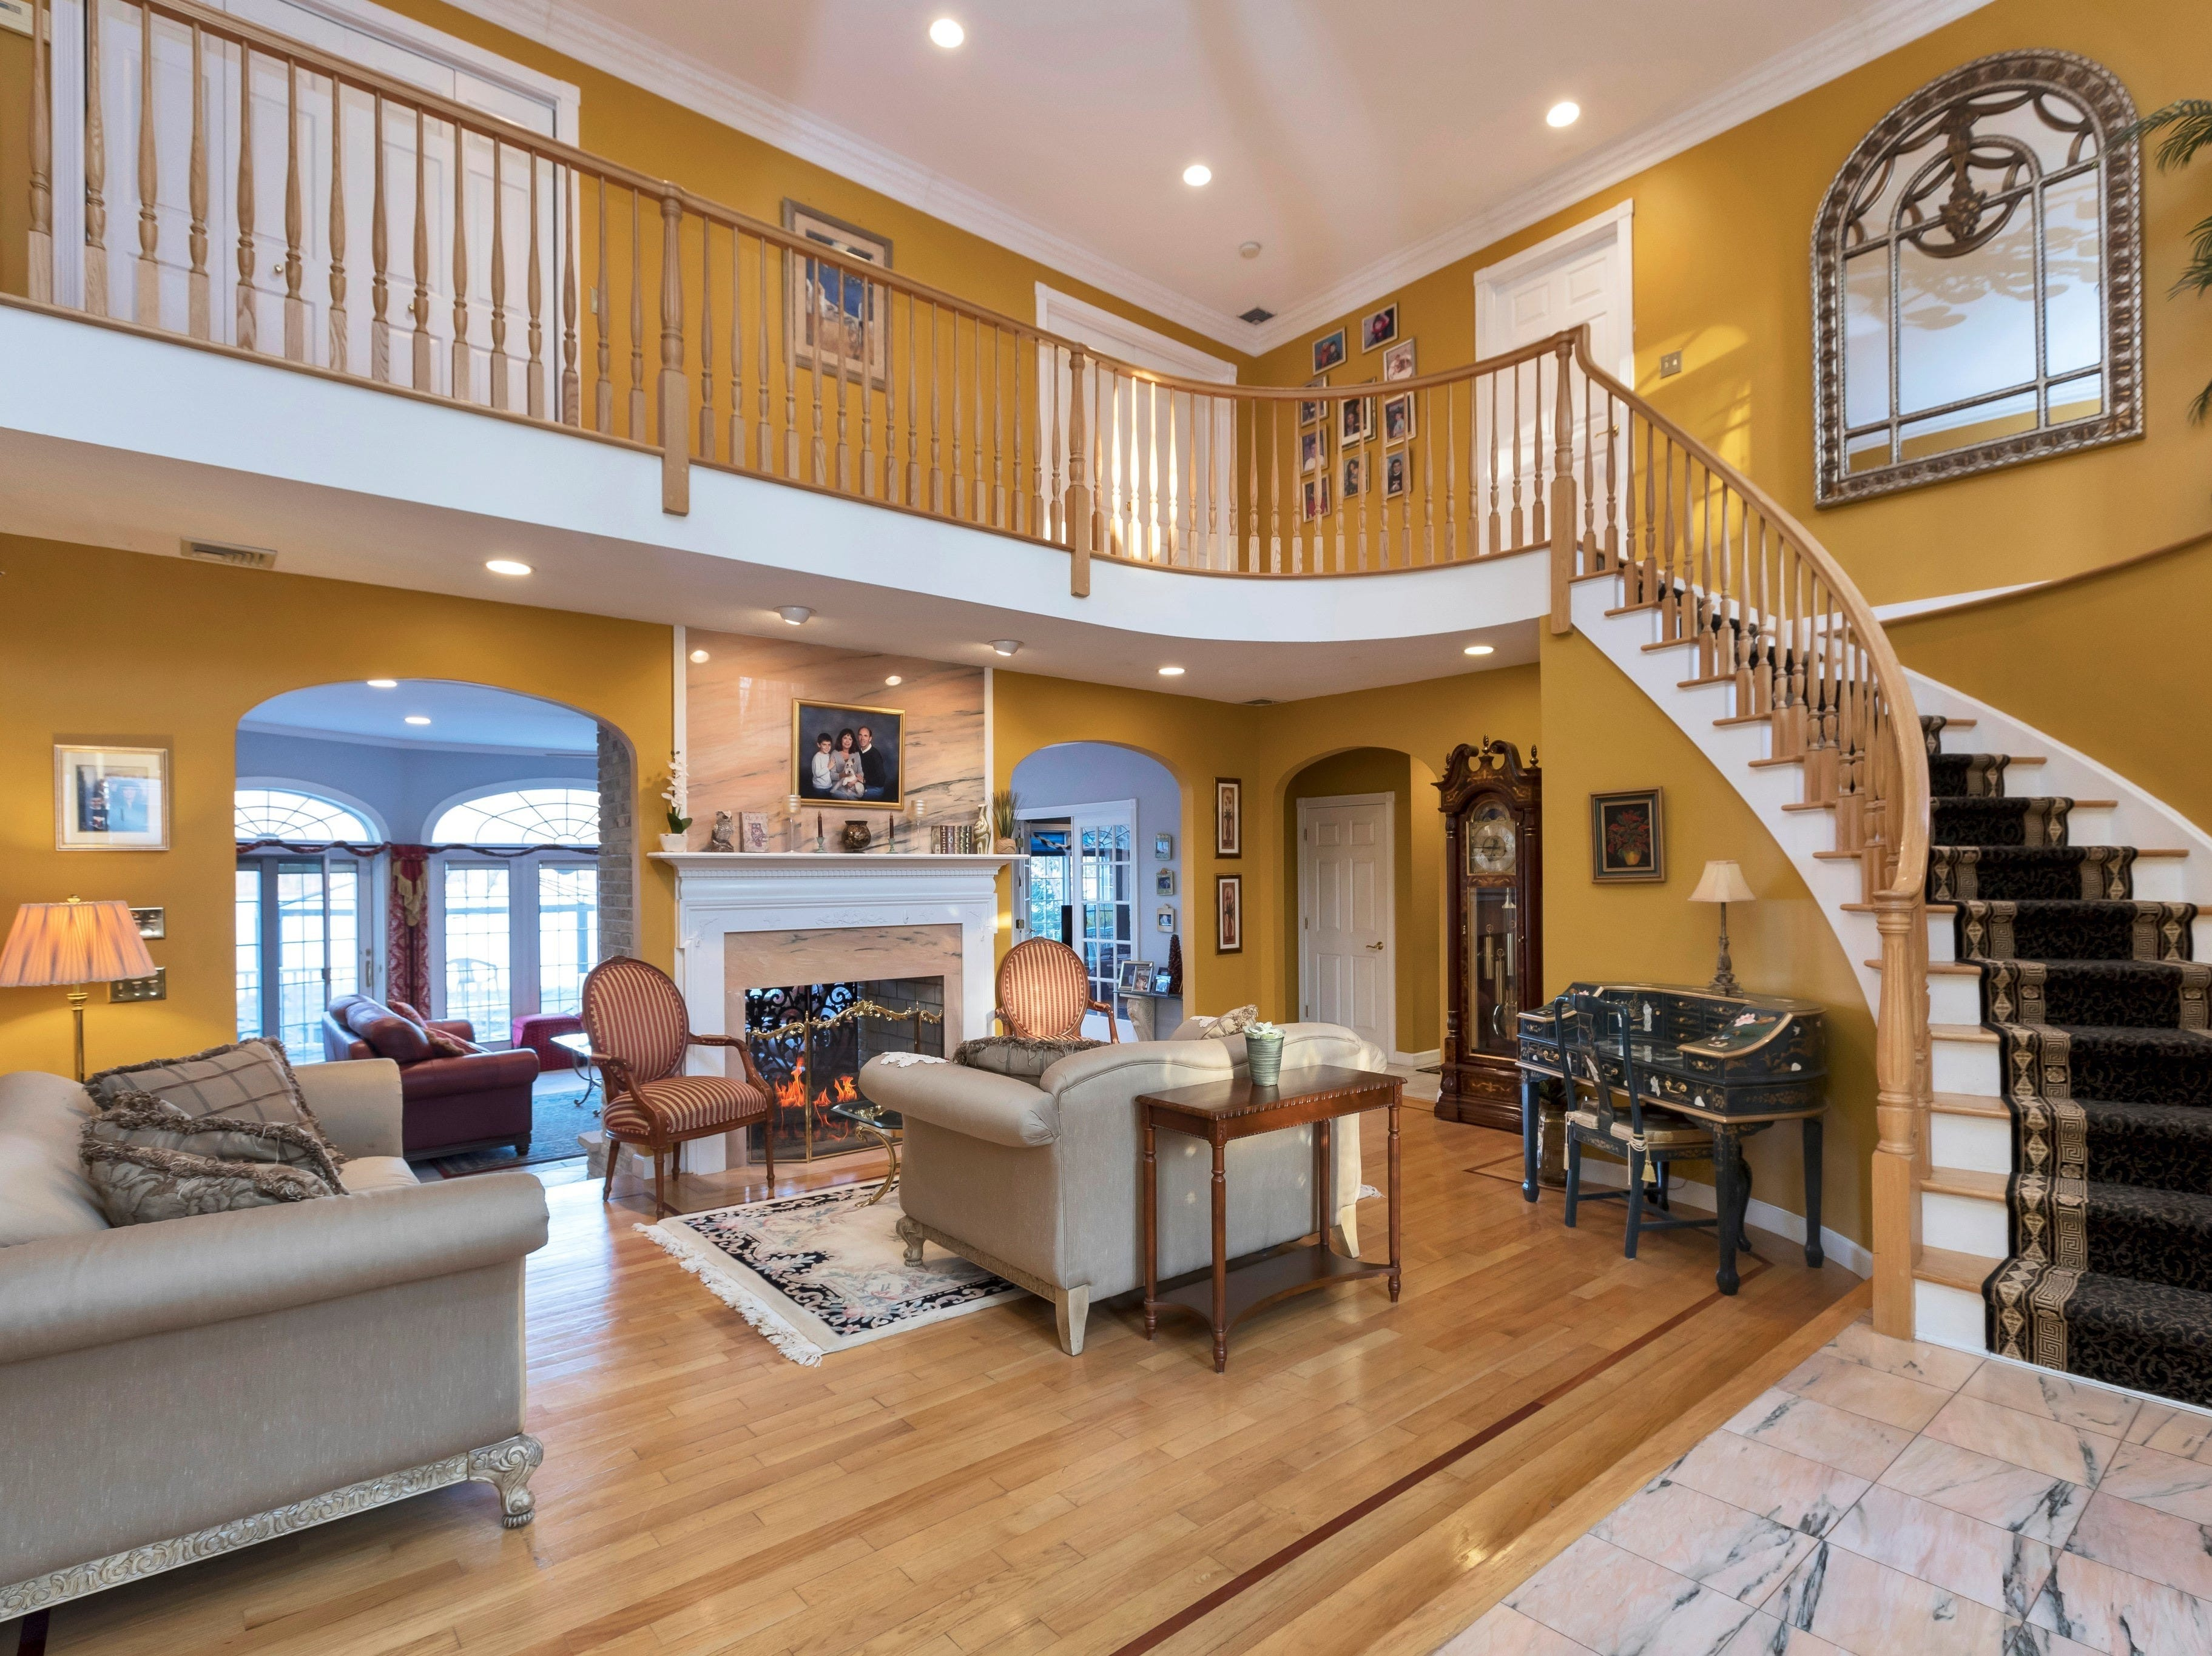 The home's open floor plan presents visitors with lake views visible through the arching windows and doors of the family room behind the two-story great room.